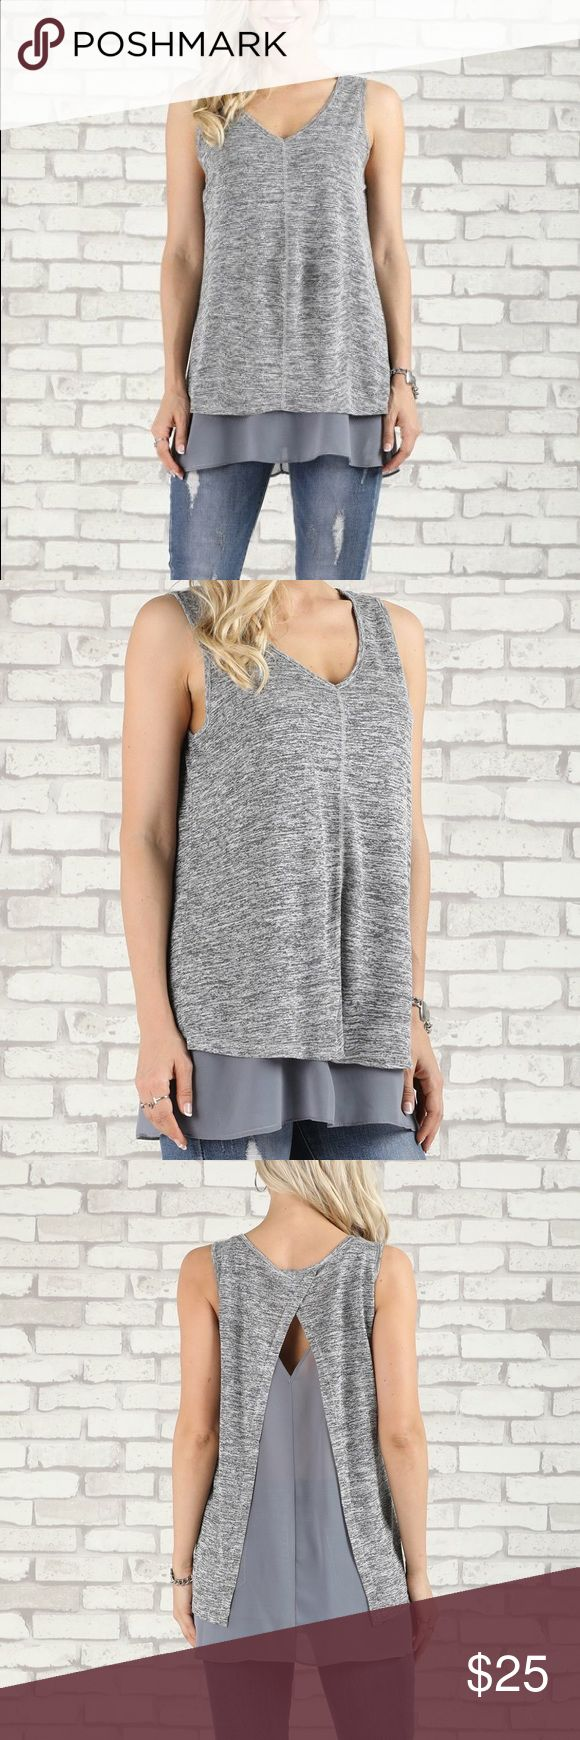 """🌺Sold🌺 Suzanne Betro V-Neck Open-Layer Tank This heather charcoal v-neck tank features an open-layer back and a solid hue for a hint of flirty appeal.  While this is a large I would say that this fits more like an XL. I've included the measurements from the website but this top runs a bit large.  Self- 65% Rayon / 35% Polyester Lining - 100% Polyester Approx. 29"""" long from high point of shoulder to hem (measured hanging) Suzanne Betro Tops"""